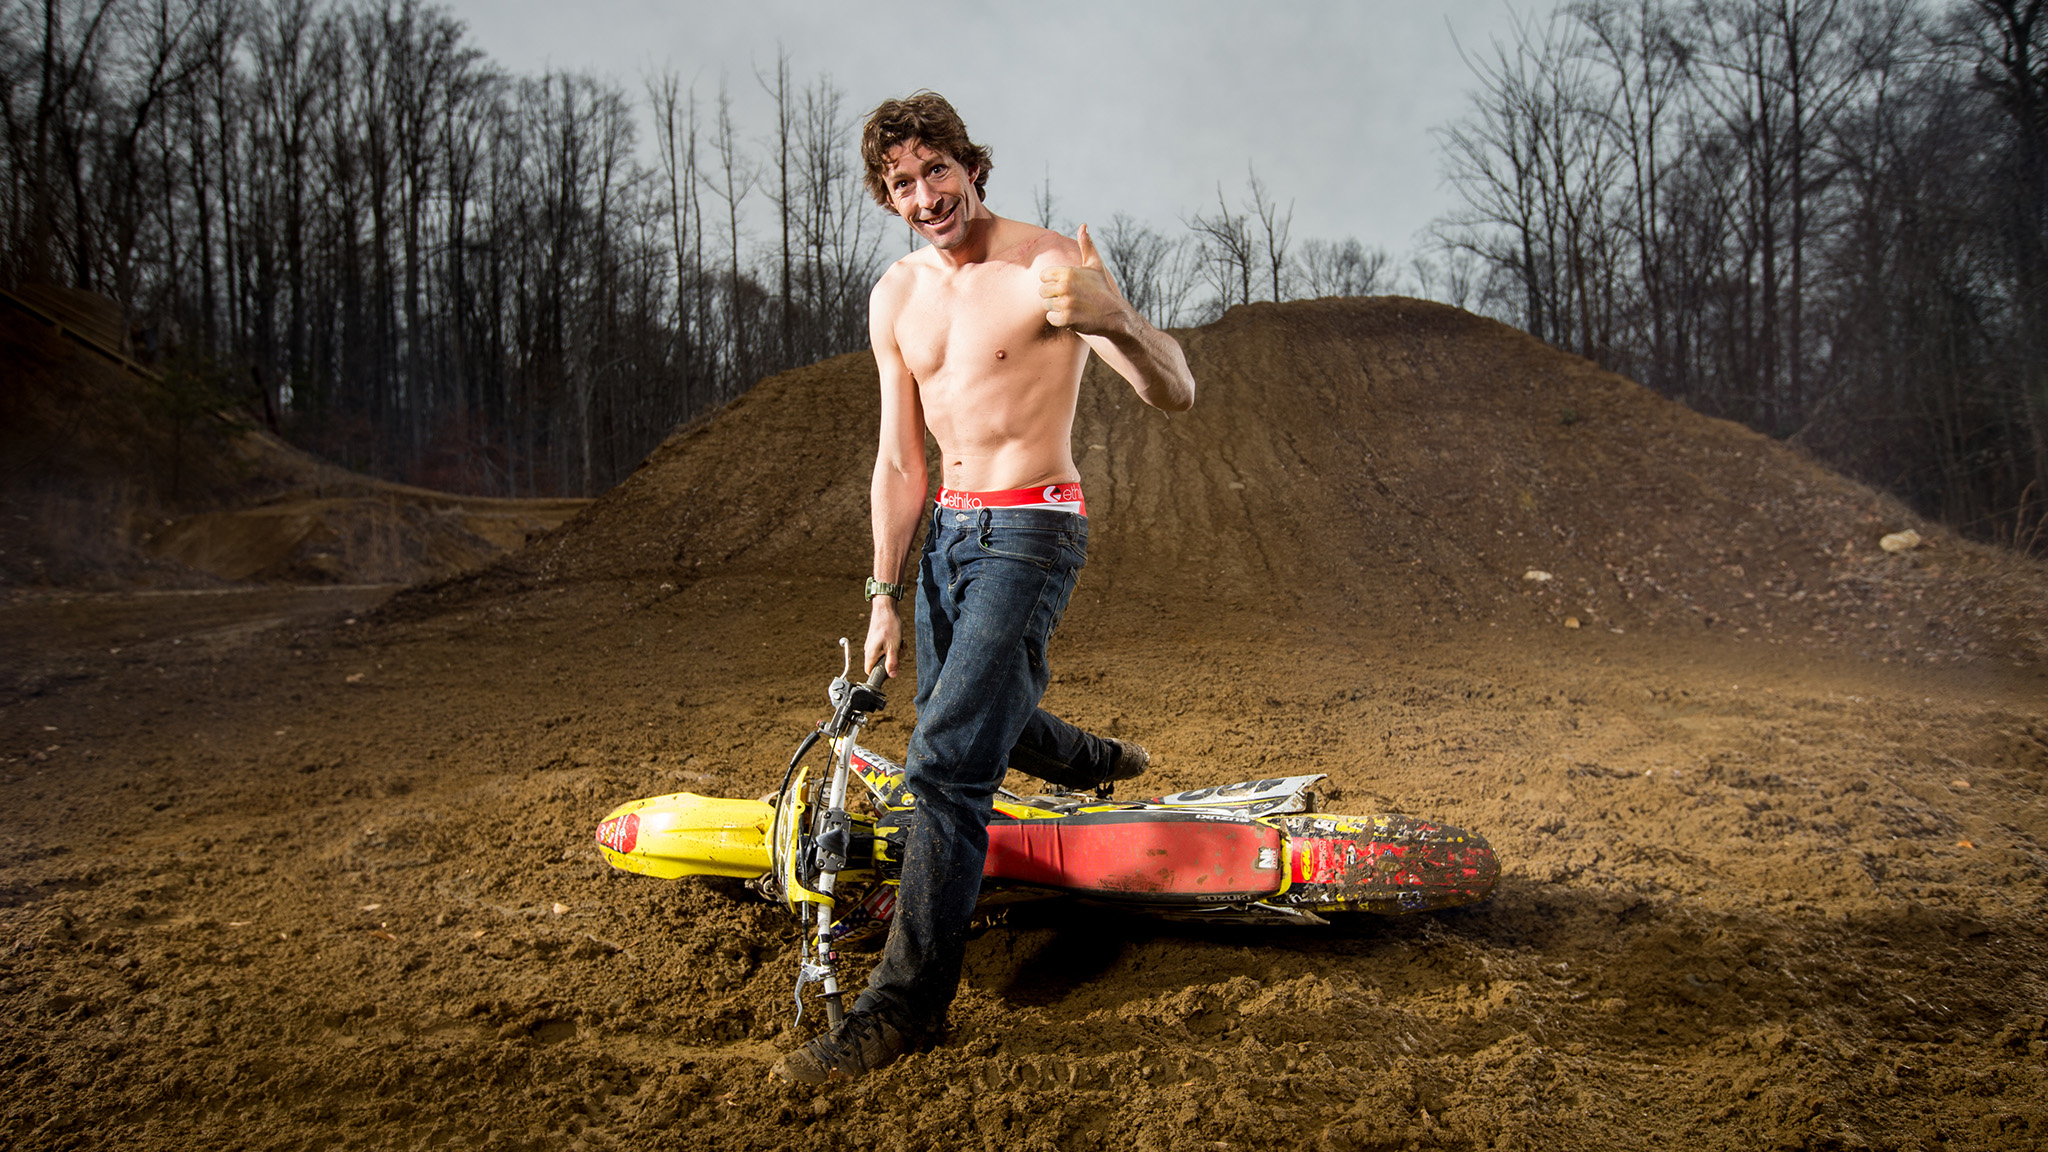 At home with Pastrana